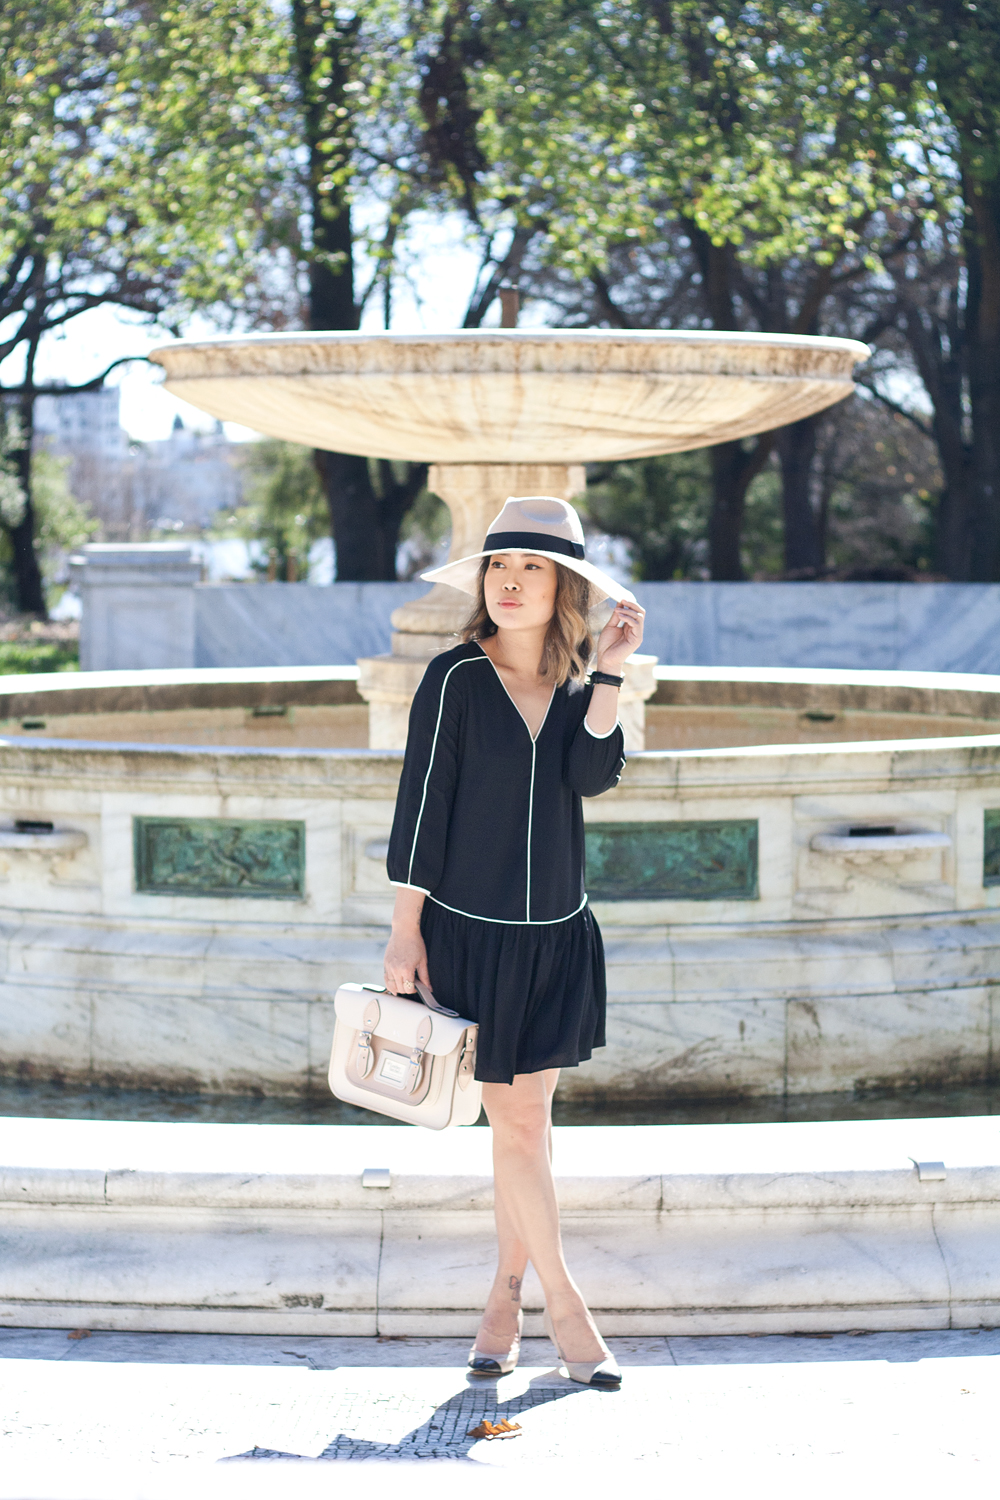 03cooperandella-dress-hat-ysl-style-fashion-sf